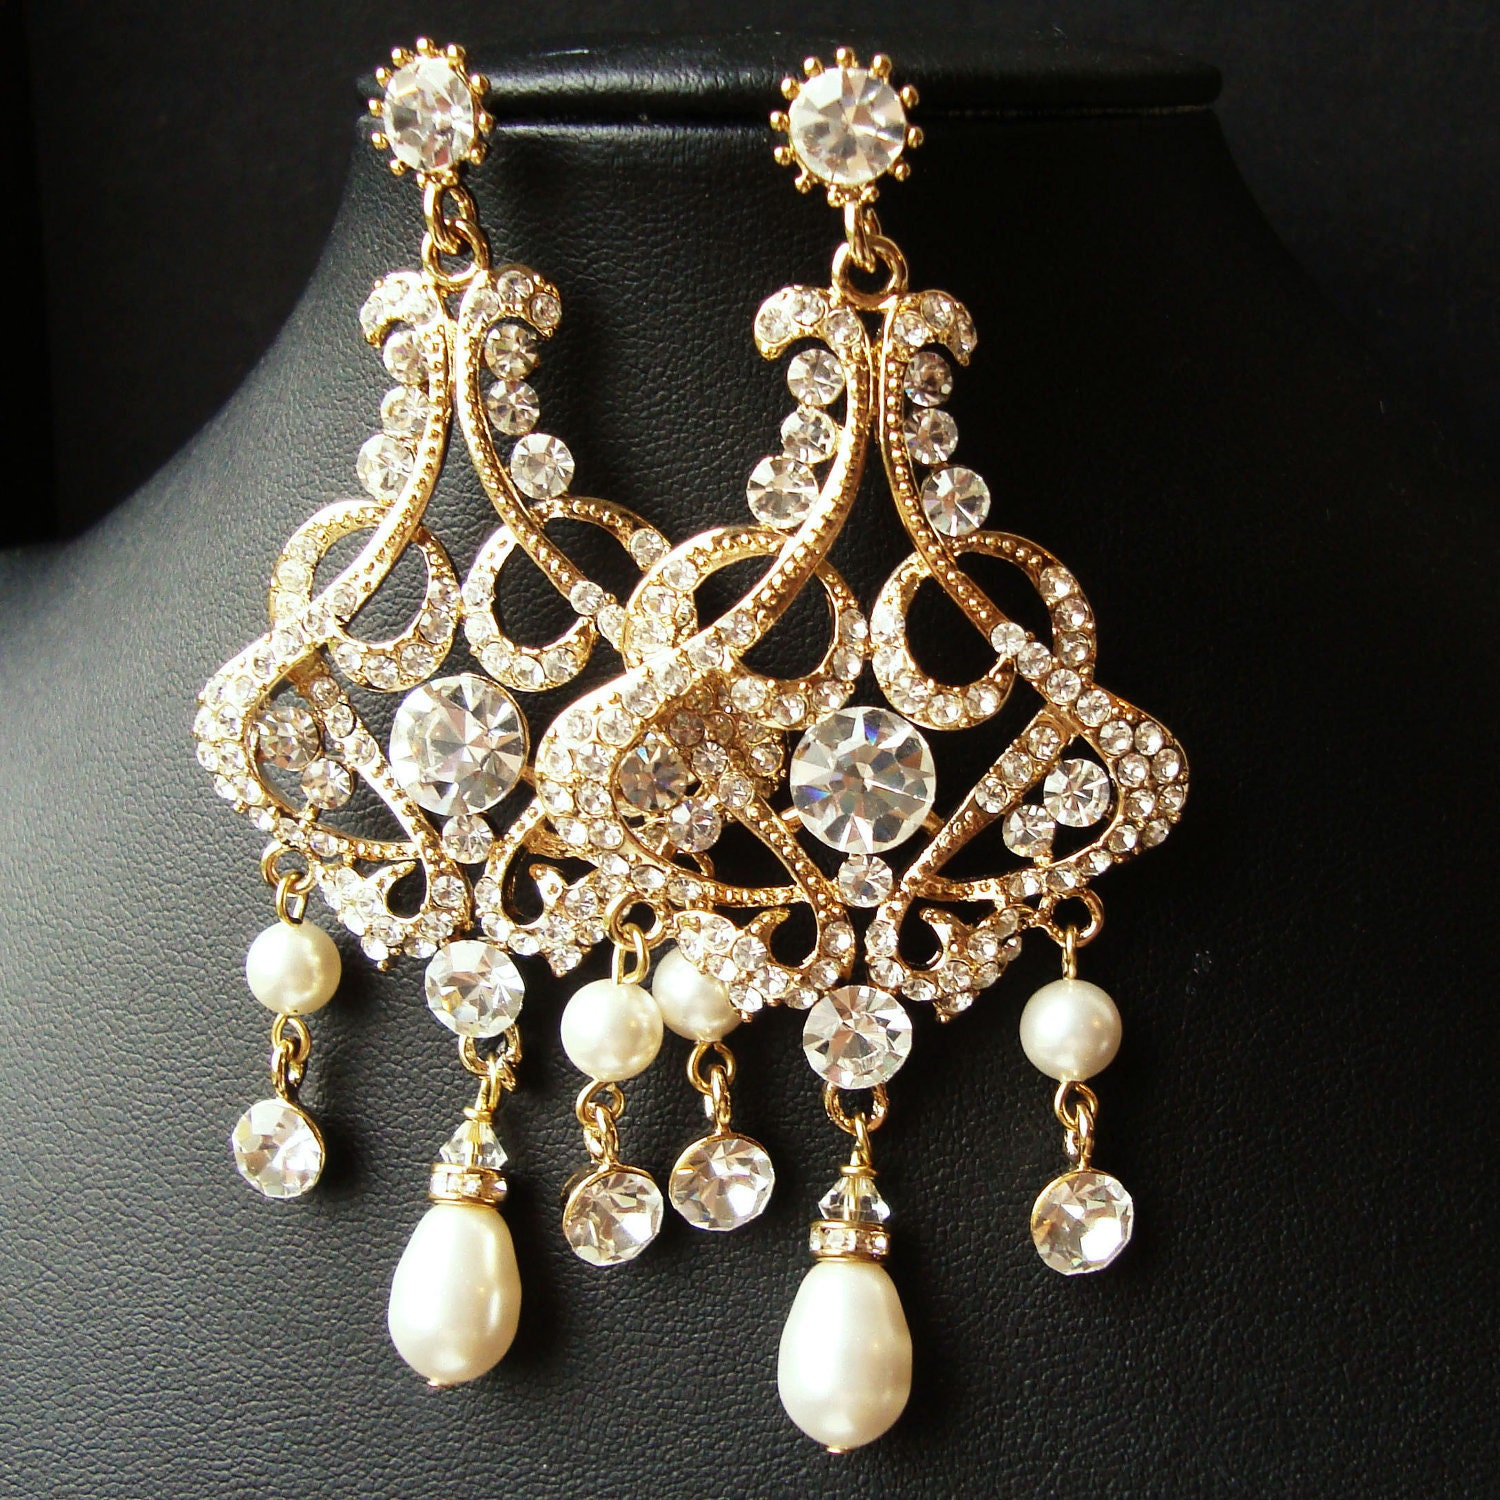 Gold Chandelier Bridal Wedding Earrings Statement By